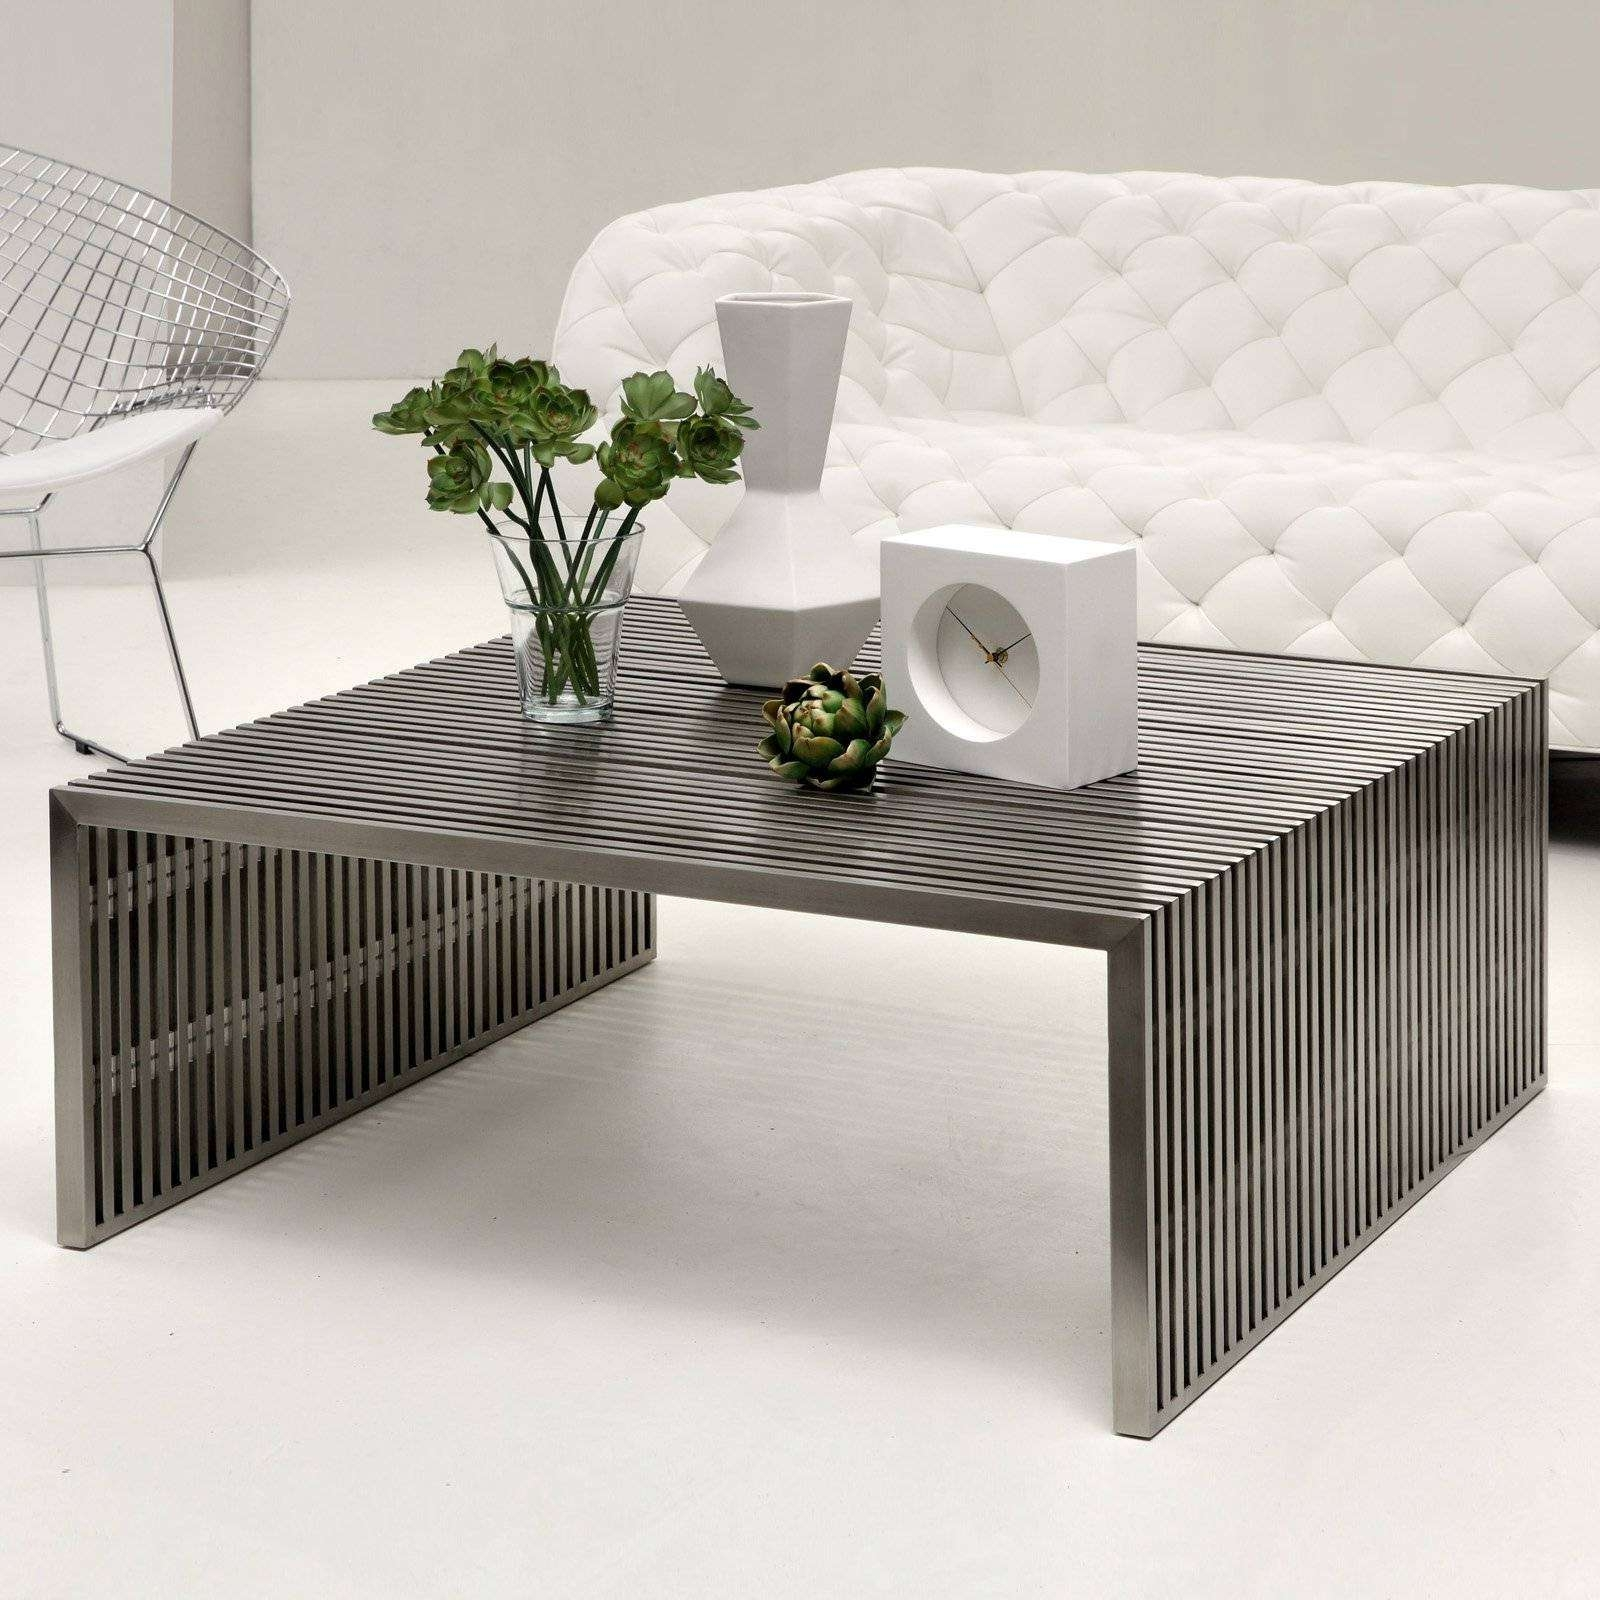 Best And Newest Metal Square Coffee Tables With Regard To Furniture & Organization: Modern Metal Square Coffee Tables For (View 2 of 20)